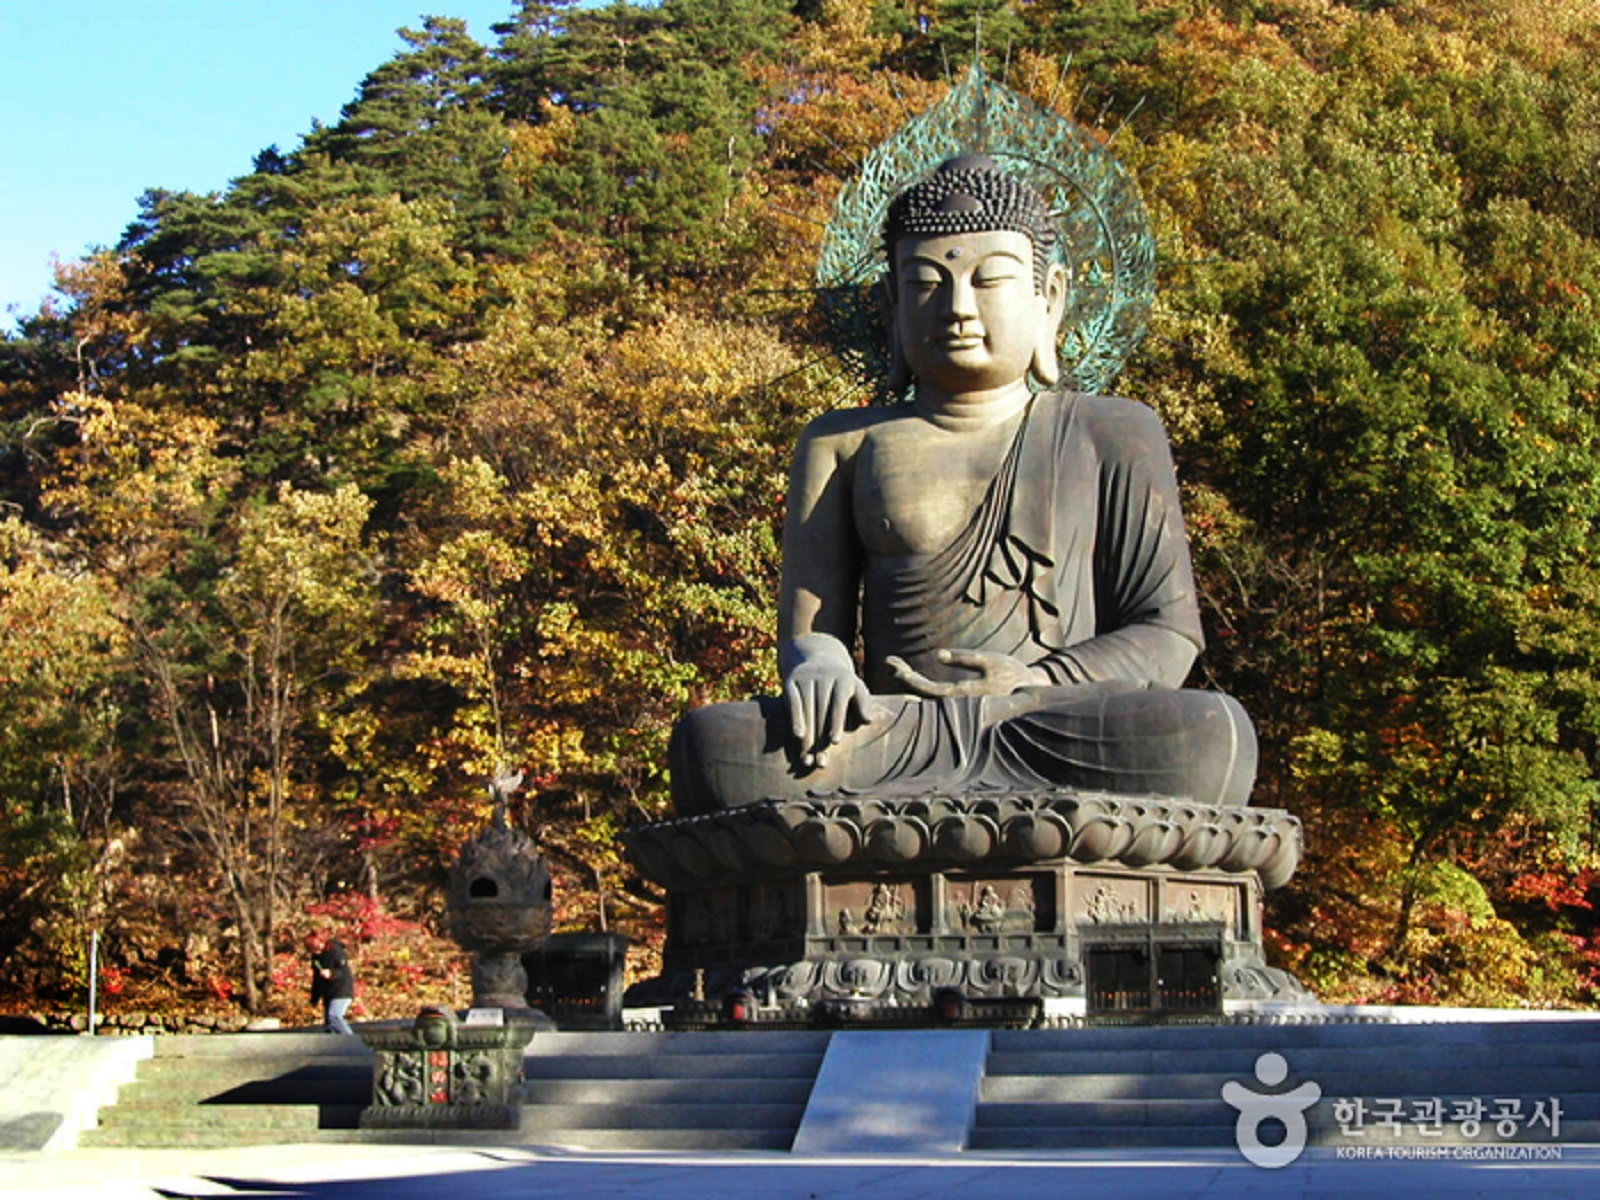 Shinheungsa Temple - a place to see giant bronze Buddha standing guard